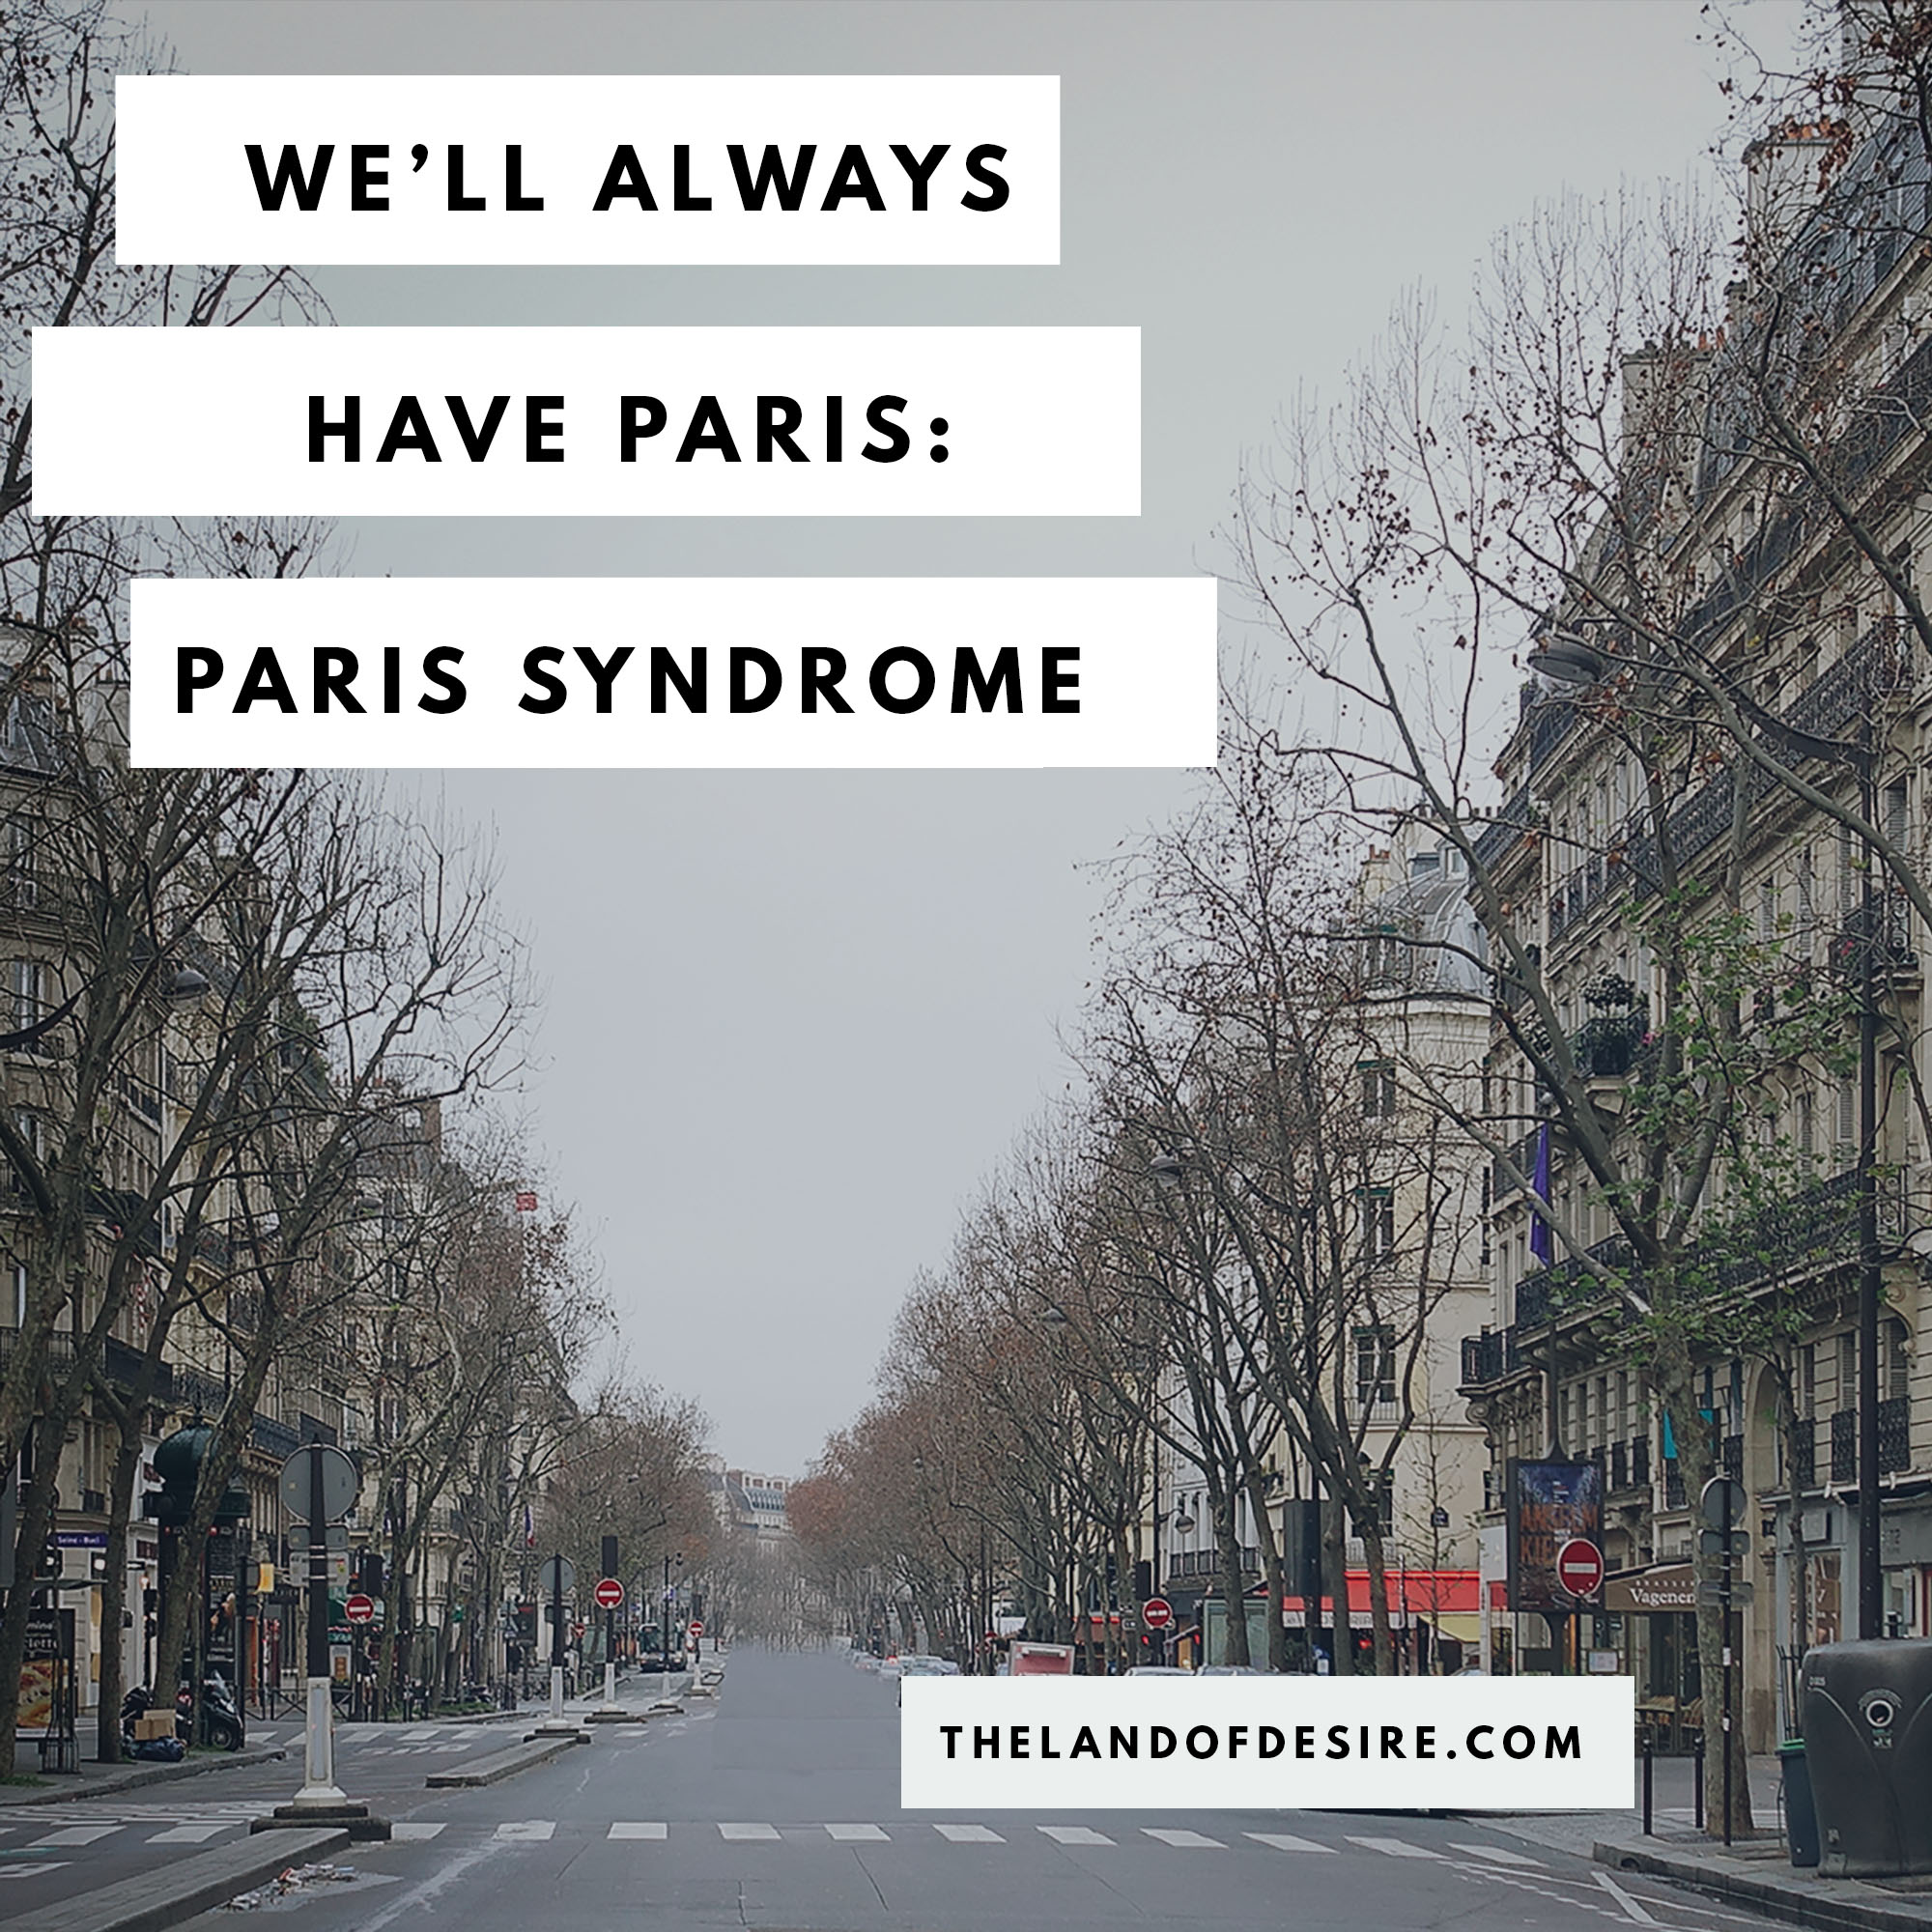 Paris syndrome - a mental disorder among Japanese tourists 68